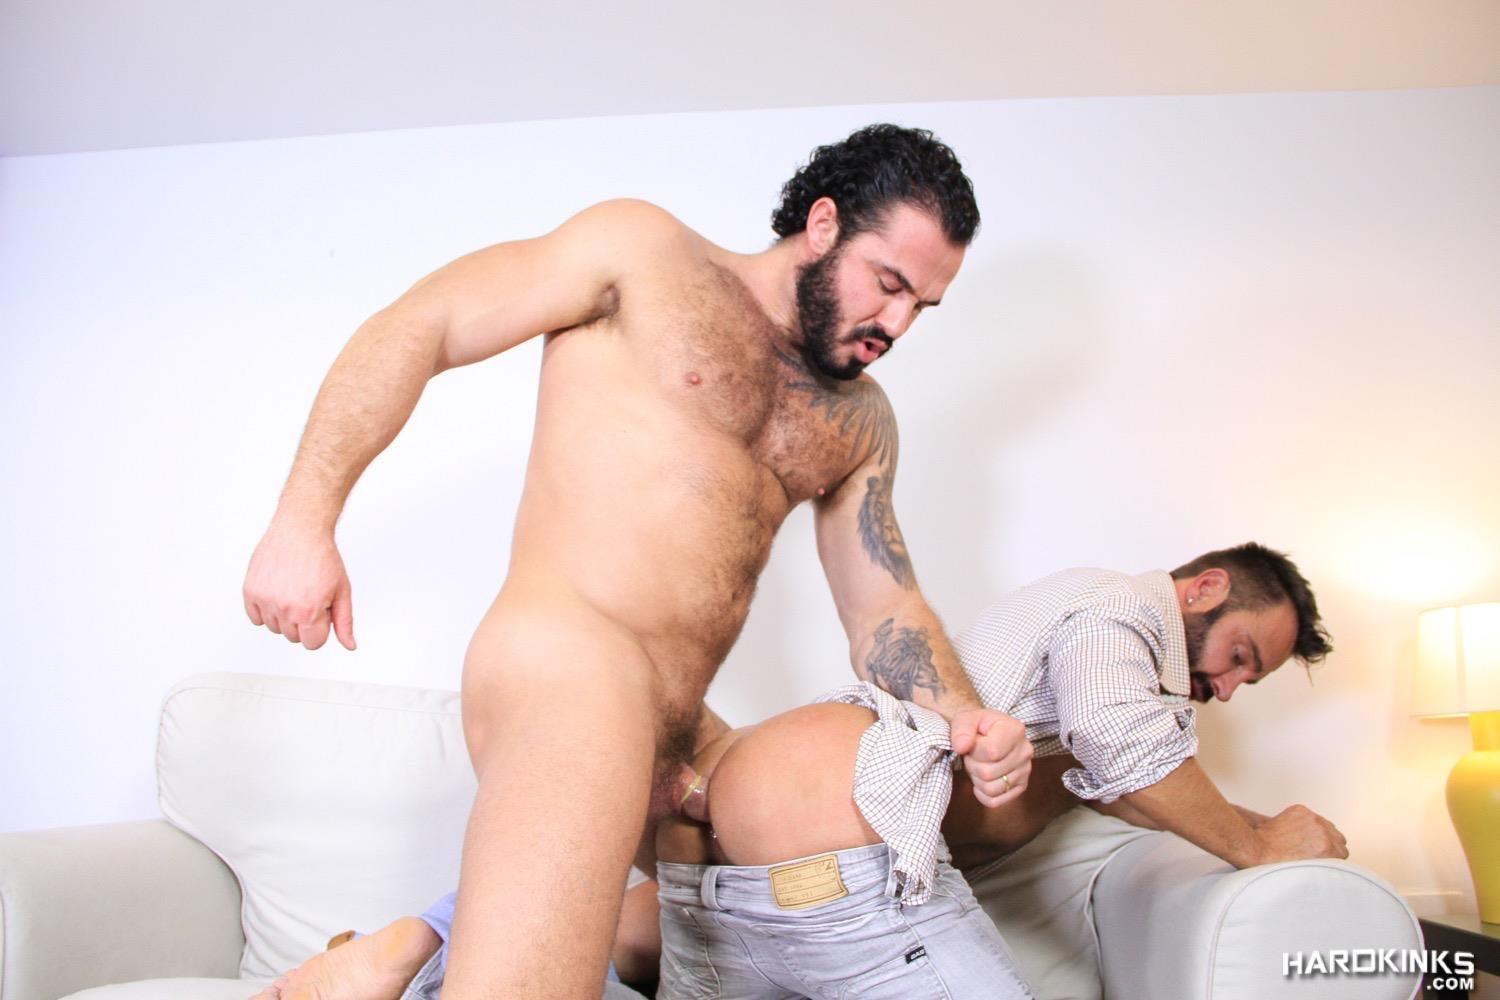 Hardkinks-Jessy-Ares-and-Martin-Mazza-Hairy-Alpha-Male-Amateur-Gay-Porn-41 Hairy Muscle Alpha Male Dominates His Coworker